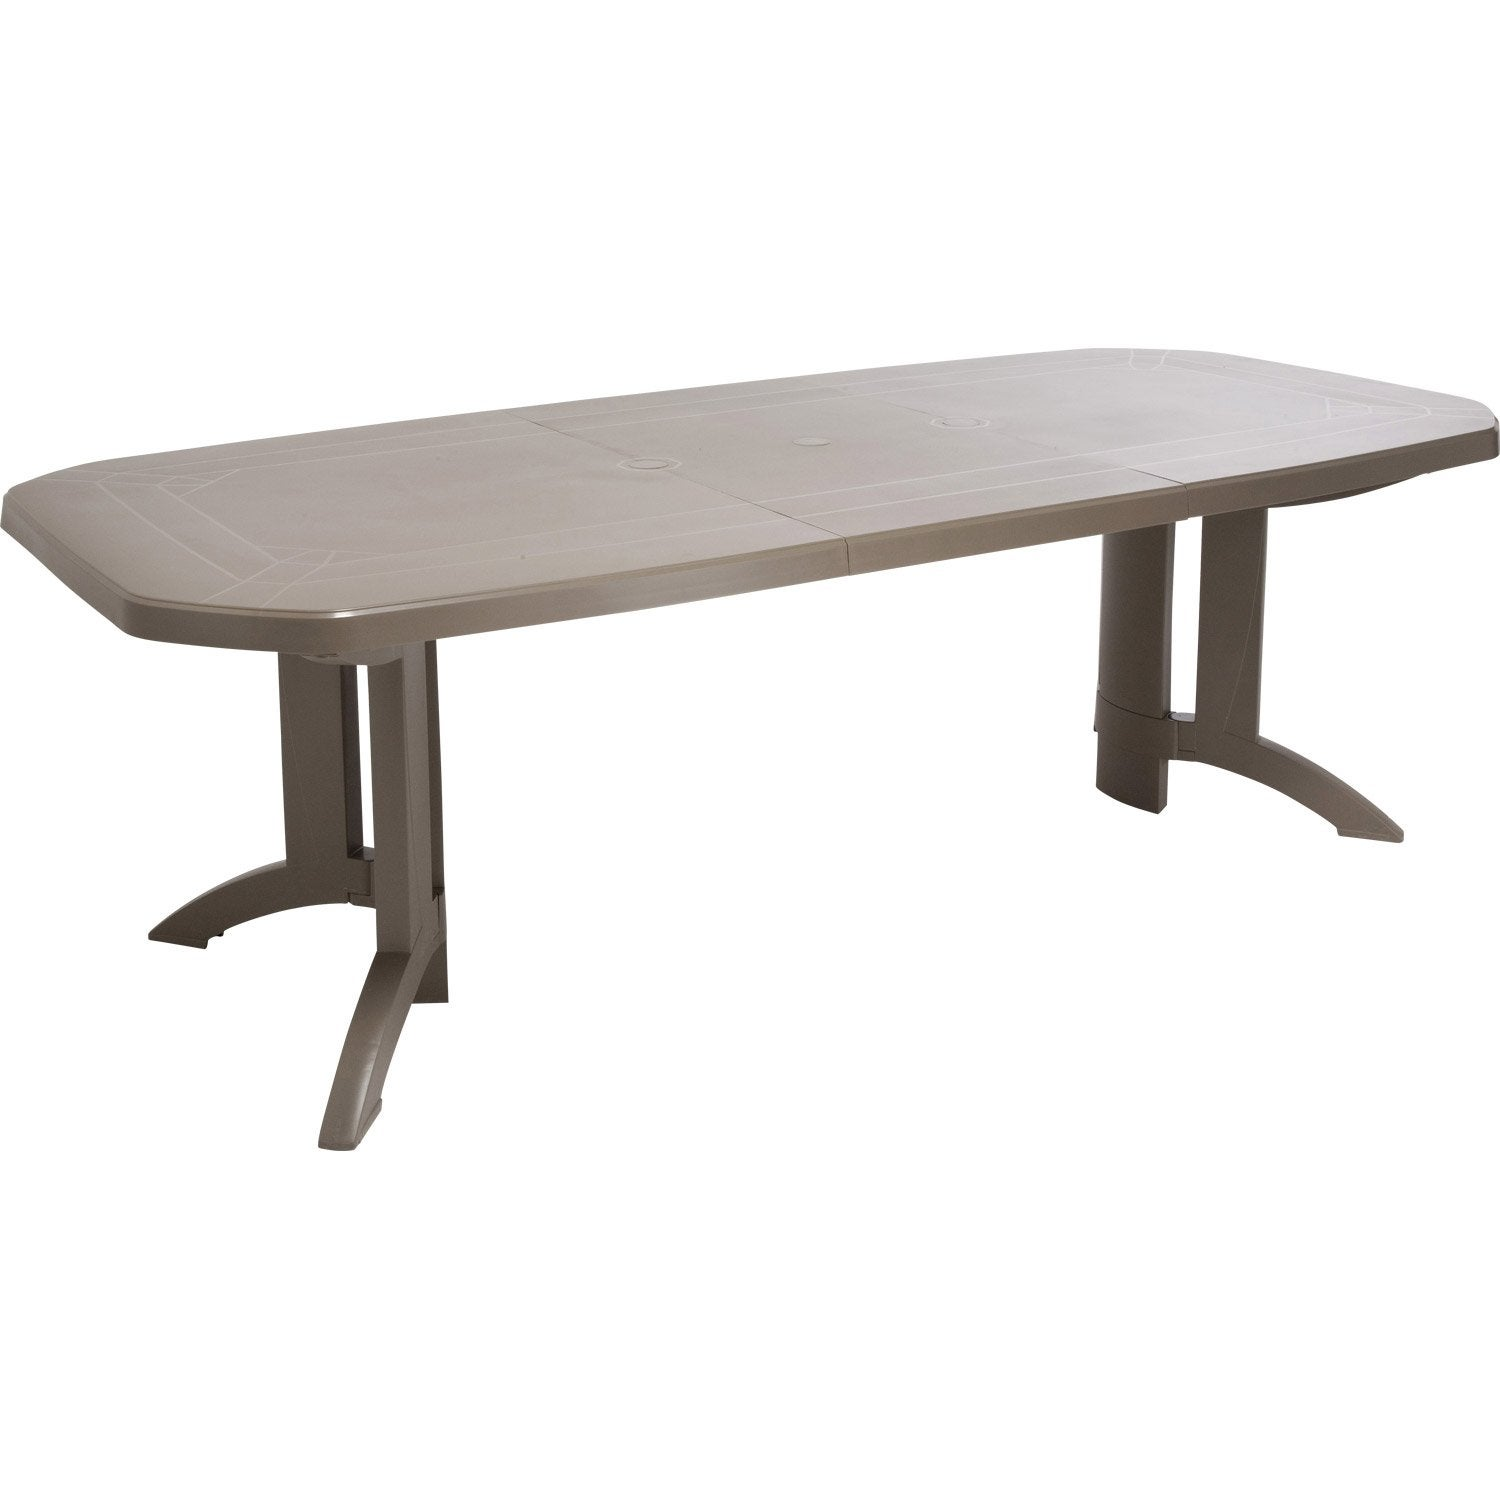 Table Salon De Jardin Maison Du Monde : Table de jardin GROSFILLEX Véga rectangulaire taupe 10 personnes